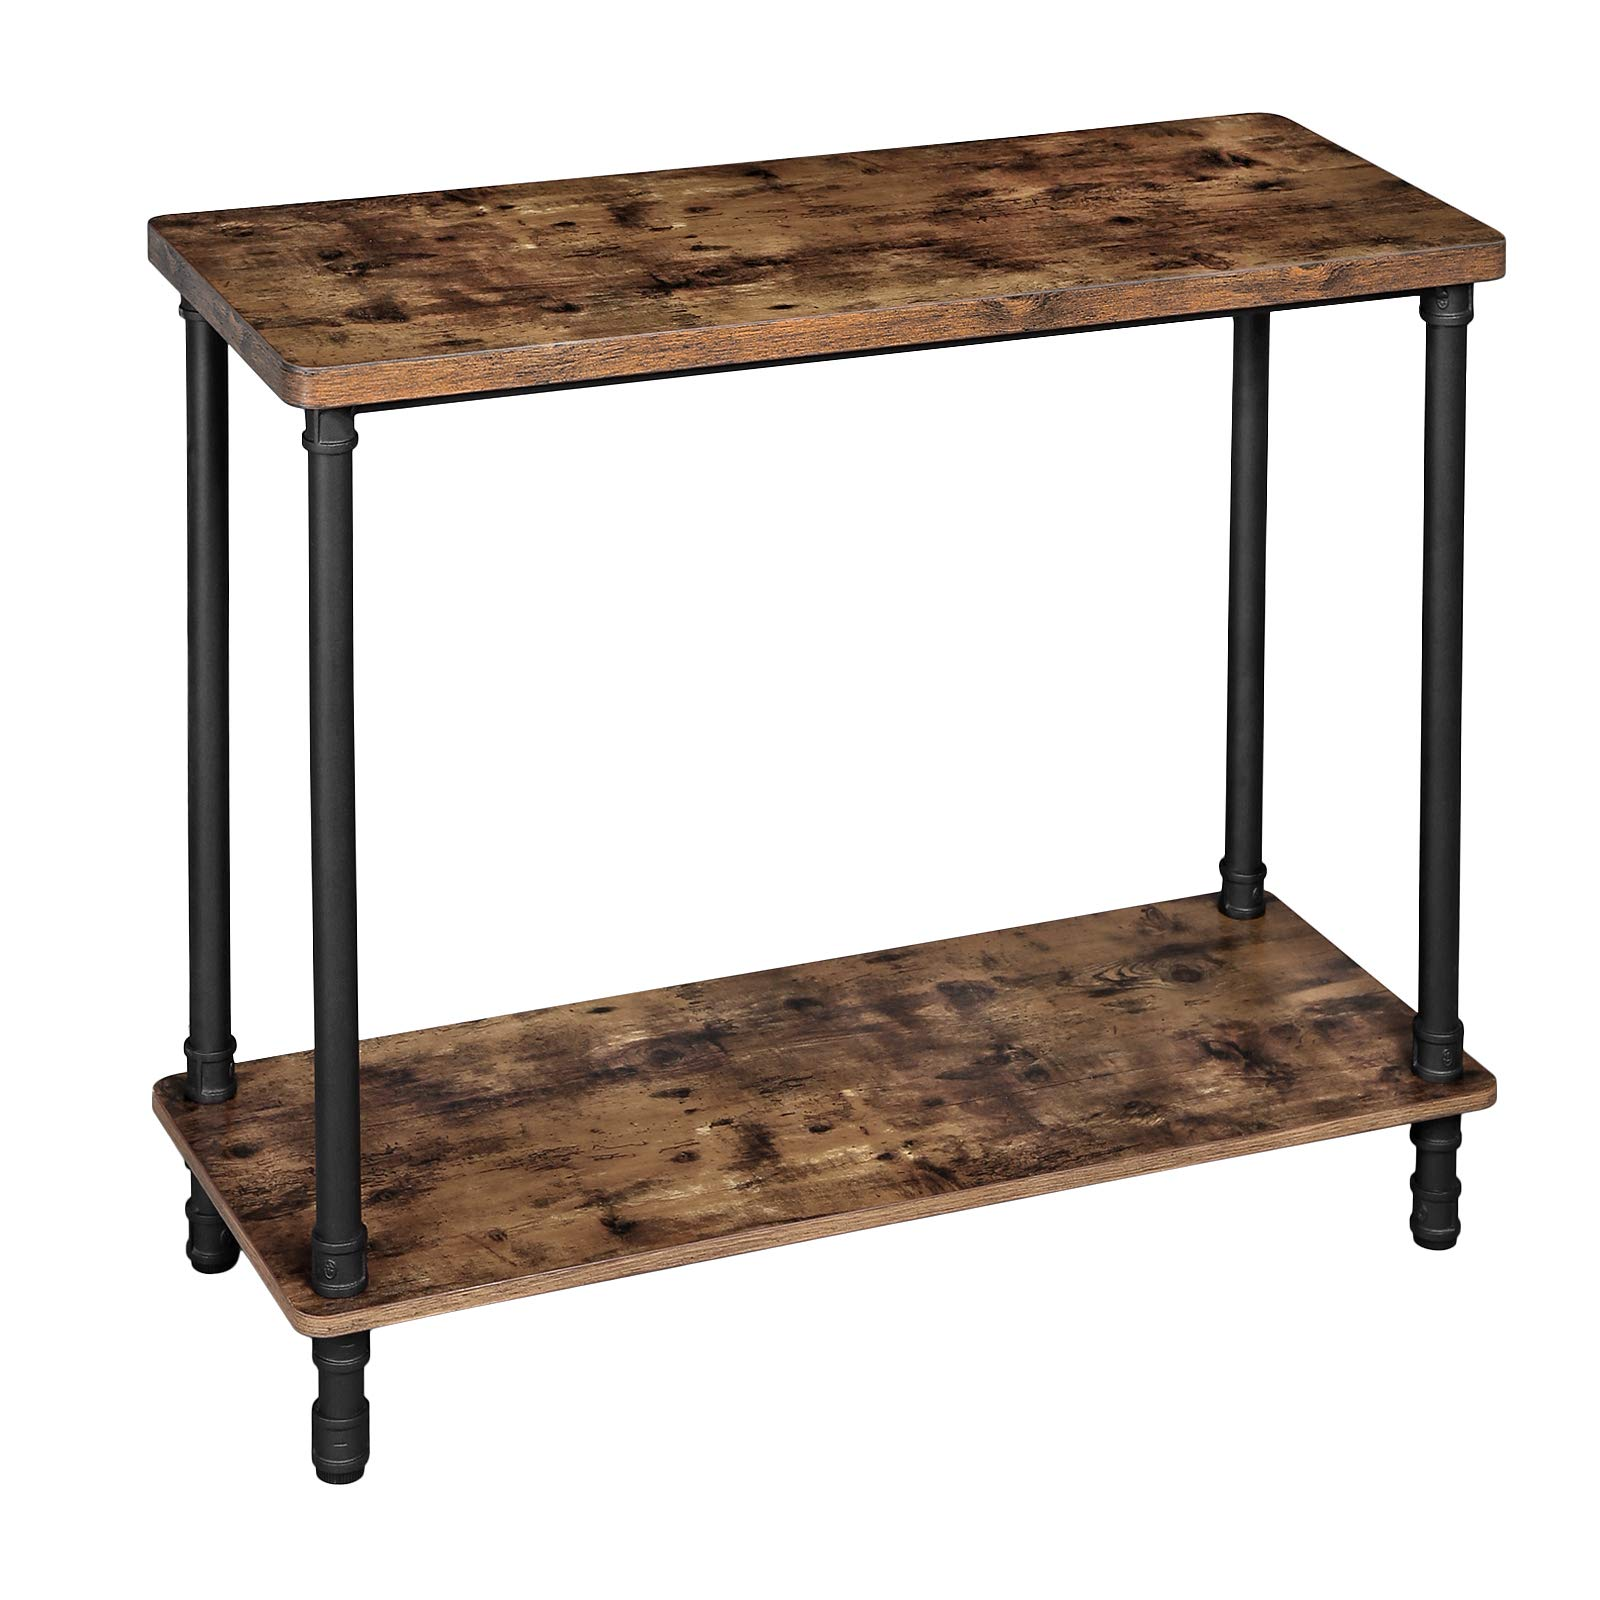 VASAGLE Industrial Console Table, Sofa Table with Iron Pipe Legs and 1.2 Inch Thick Table Top, Easy Assembly, Accent Table for Hallway, Entryway, Living Room, Rustic Brown ULNT82X by VASAGLE